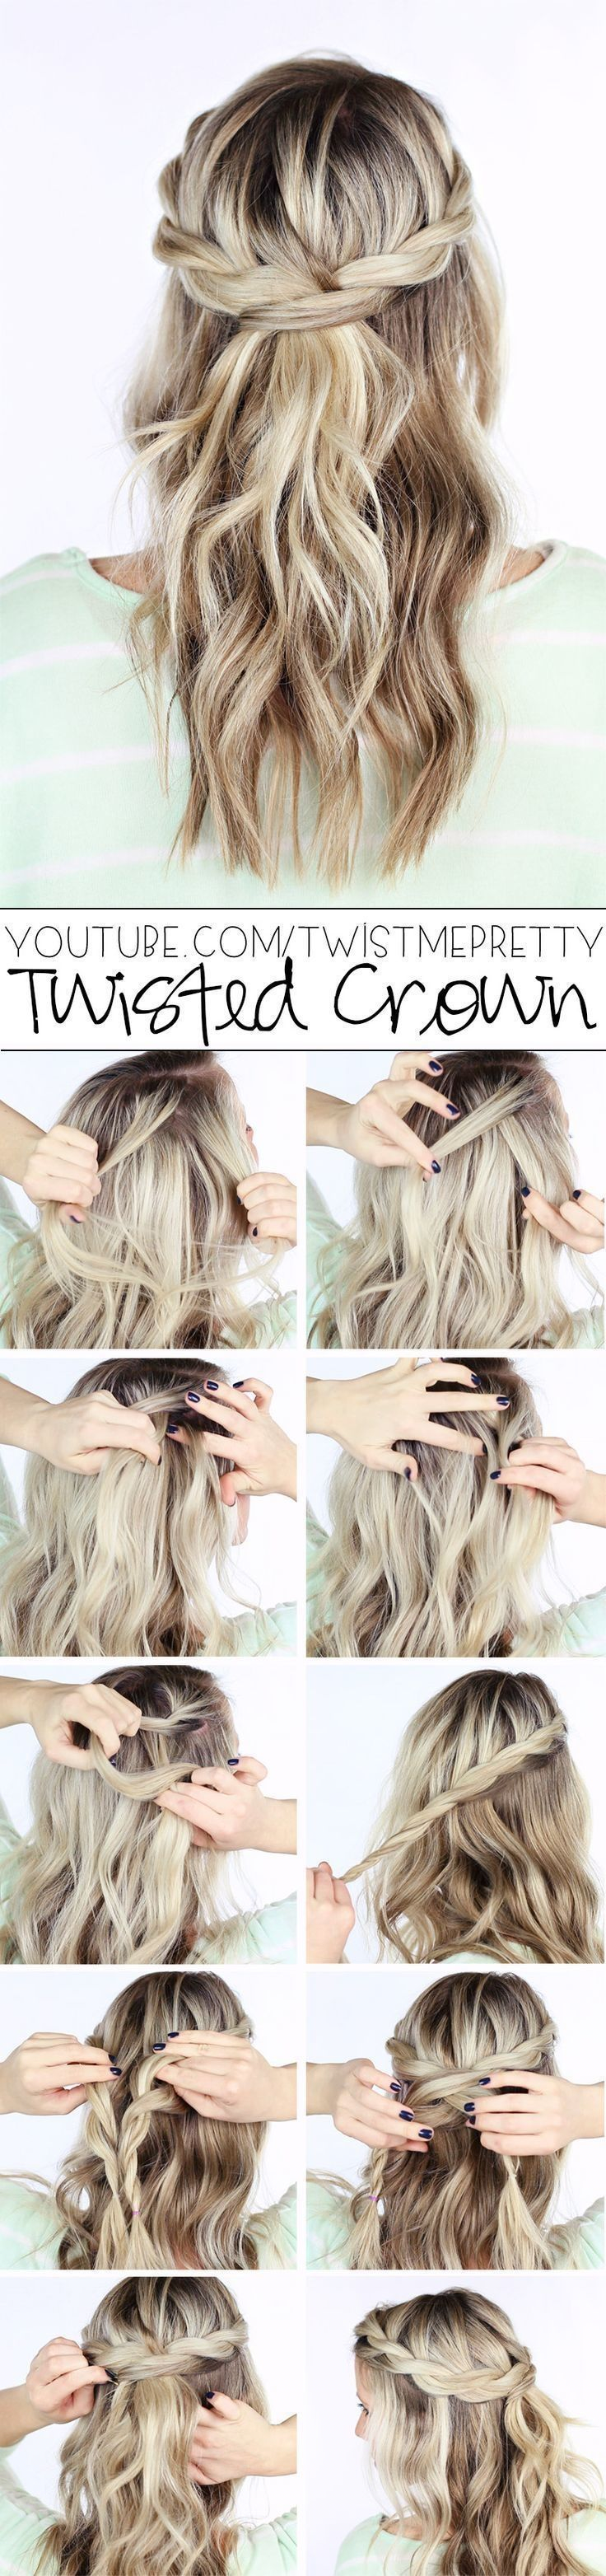 Create a regal twisted crown